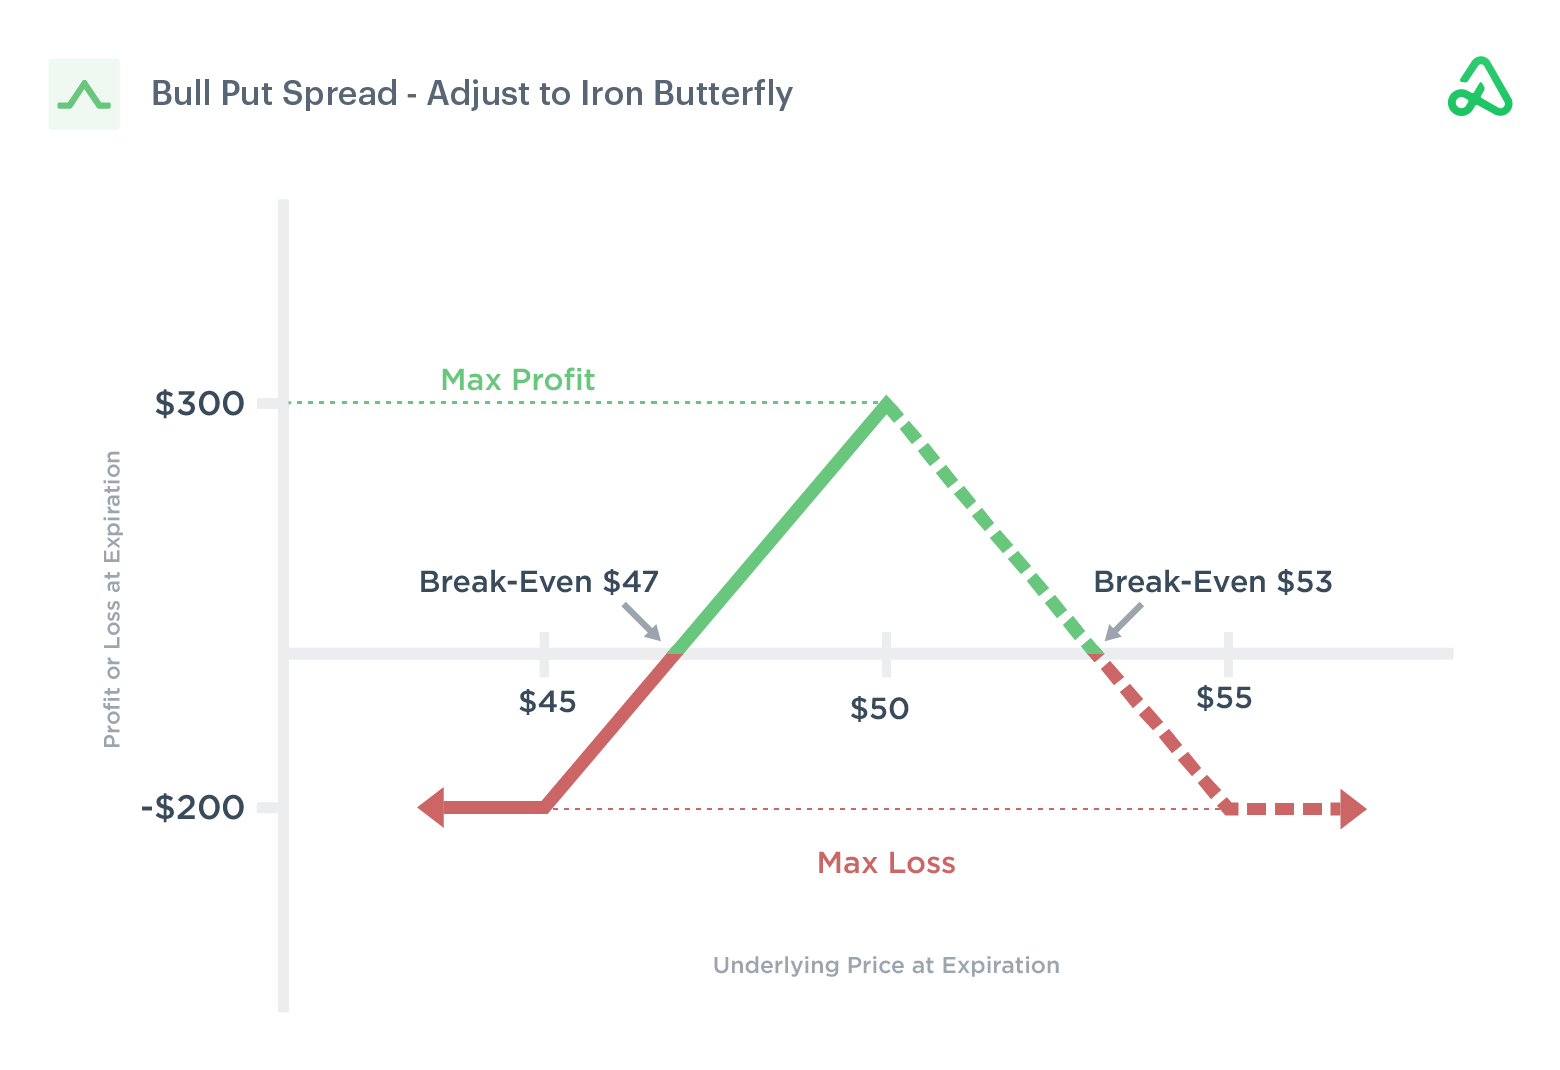 Image of a bull put spread adjusted to an iron butterfly